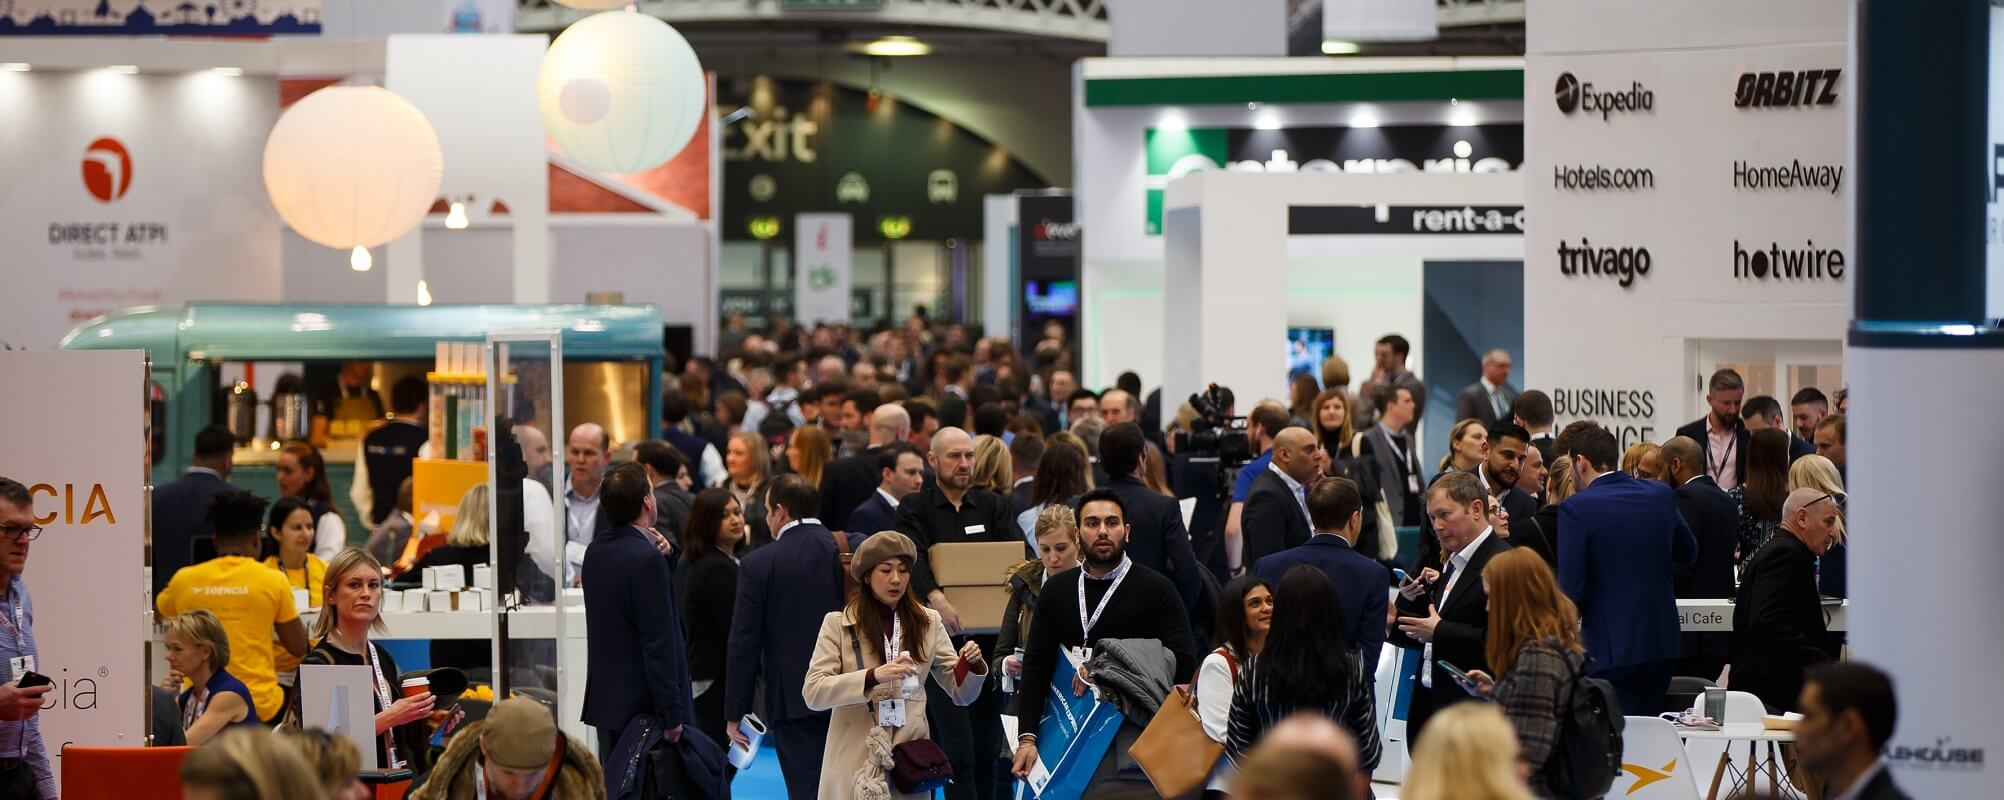 Htel Serviced Apartments present at Business Travel Show London 2019